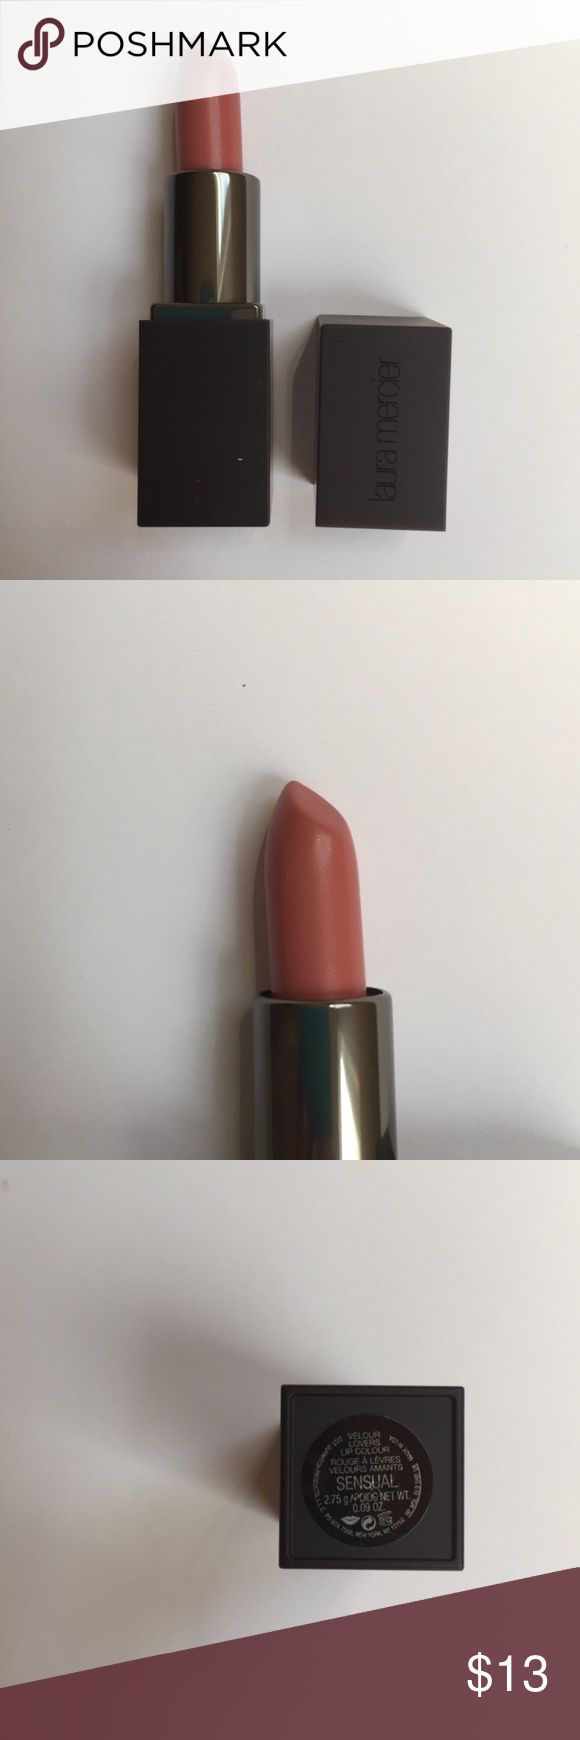 NWT Mini Laura Mercier lipstick Shade: sensual. From April 2017 from bluemercury. Never used. Sephora Makeup